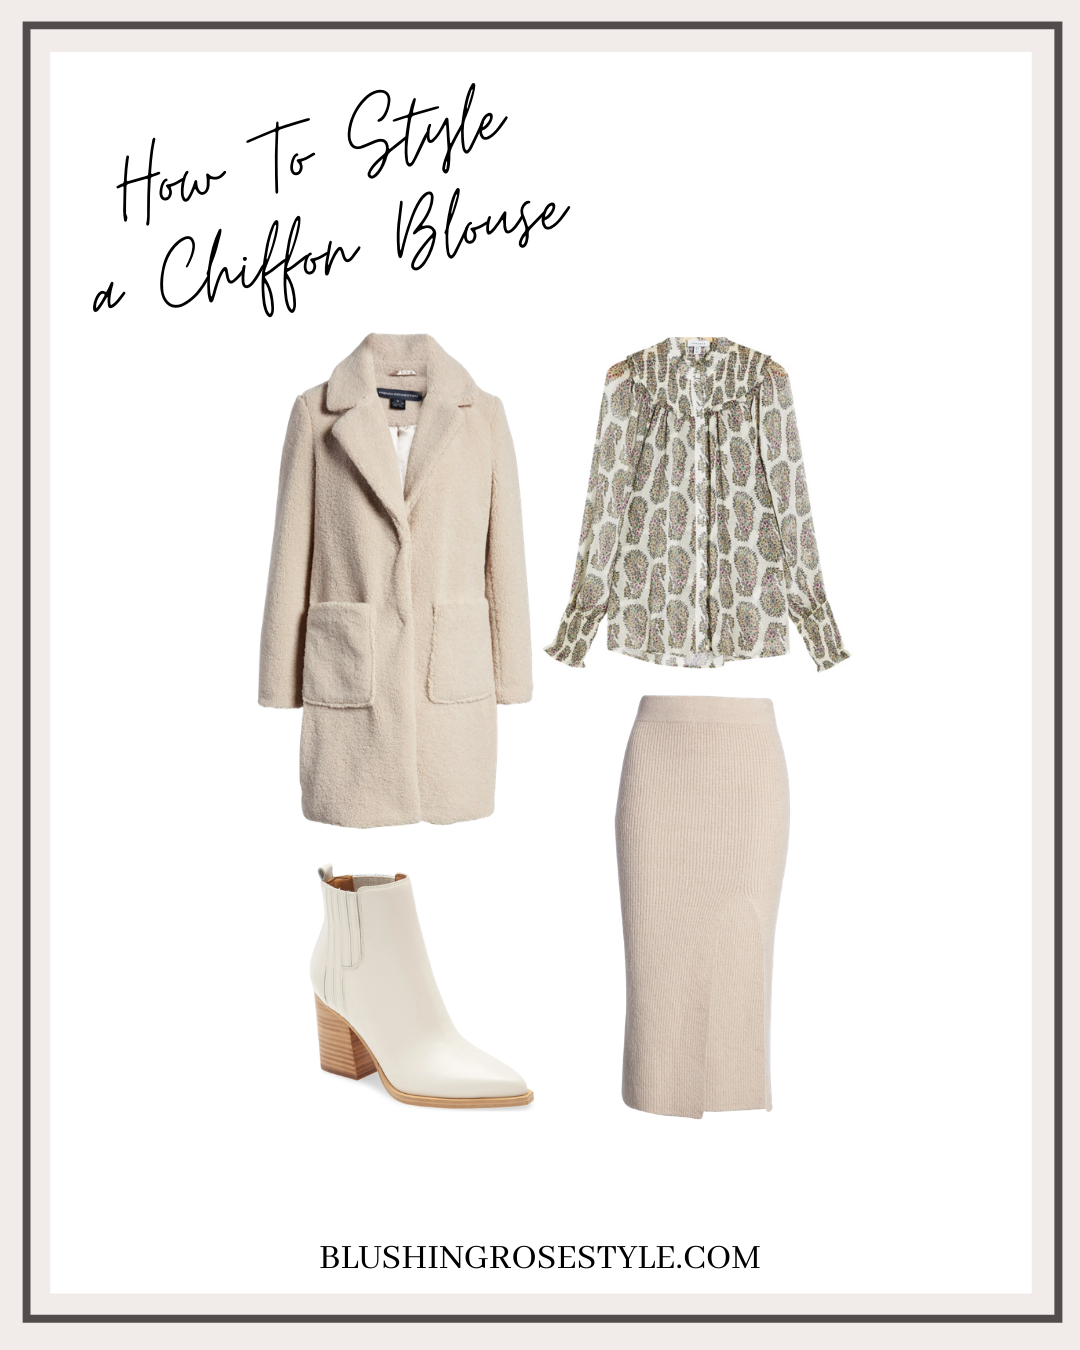 How to style pattered chiffon blouse